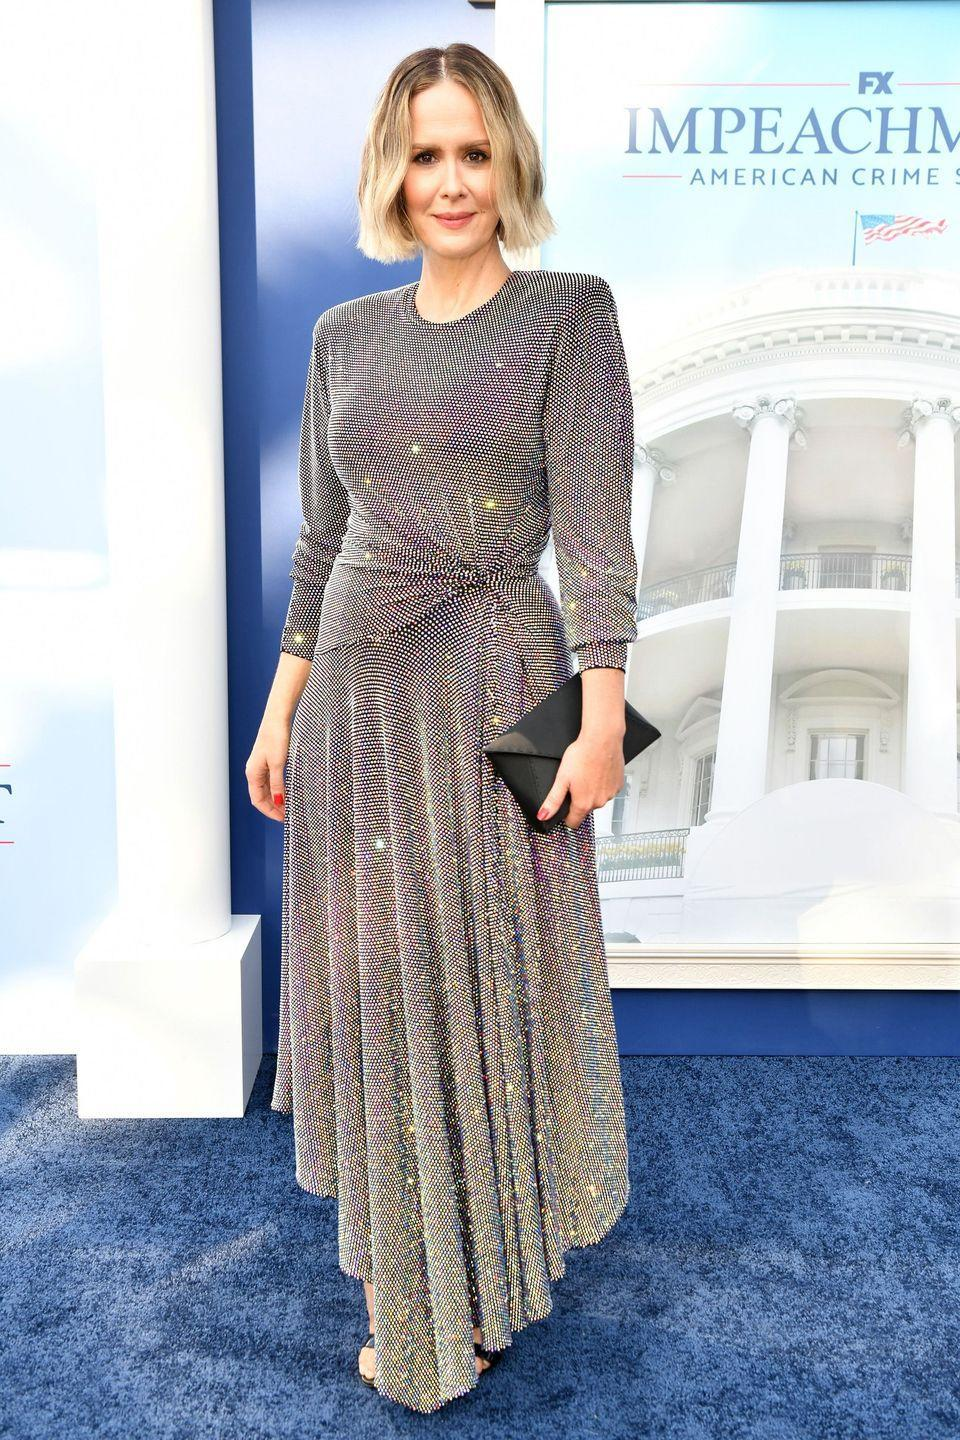 """<p><strong>1 September</strong></p><p>Sarah Paulson arrived at the premiere of <a href=""""https://www.harpersbazaar.com/uk/culture/culture-news/a37372956/impeachment-american-crime-real-story-explained/"""" rel=""""nofollow noopener"""" target=""""_blank"""" data-ylk=""""slk:Impeachment: American Crime Story"""" class=""""link rapid-noclick-resp"""">Impeachment: American Crime Story</a> wearing a glittering gunmetal Alexandre Vauthier dress. </p><p><a class=""""link rapid-noclick-resp"""" href=""""https://www.harpersbazaar.com/uk/culture/culture-news/a37372956/impeachment-american-crime-real-story-explained/"""" rel=""""nofollow noopener"""" target=""""_blank"""" data-ylk=""""slk:THE TRUE STORY BEHIND 'IMPEACHMENT'"""">THE TRUE STORY BEHIND 'IMPEACHMENT'</a></p>"""